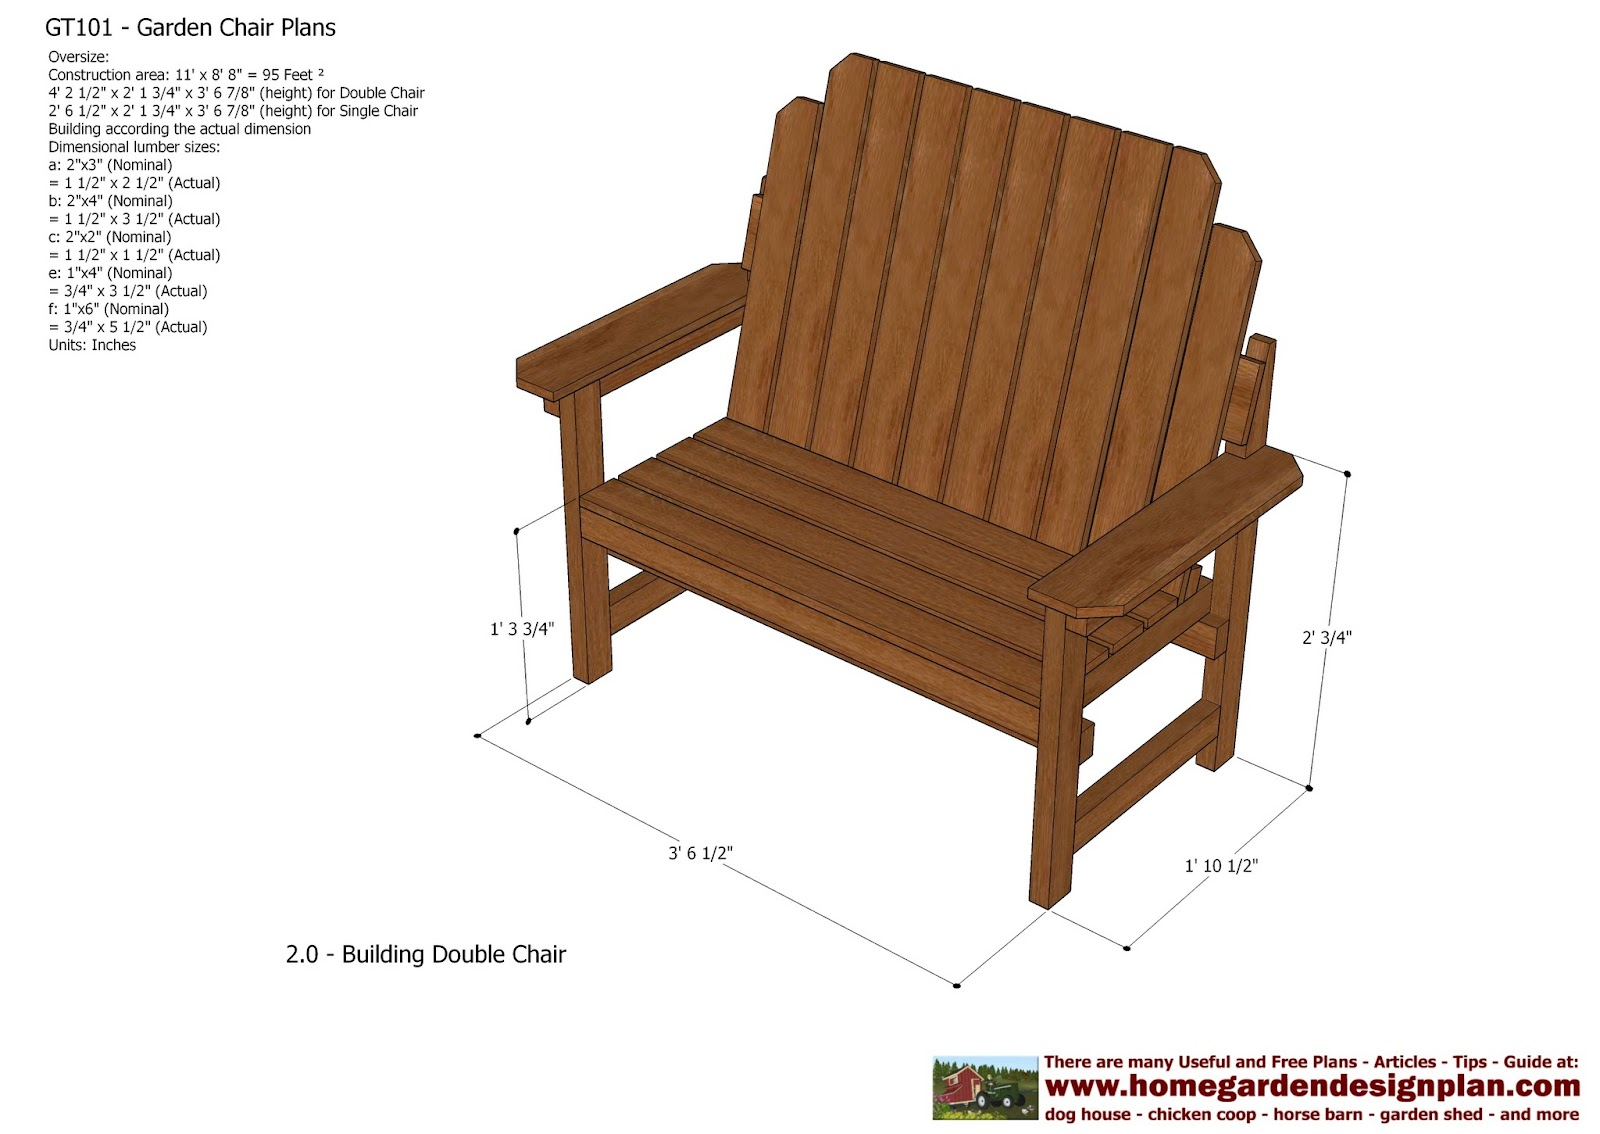 ... Plans Out Door Furniture Plans Woodworking Plans. on teak patio